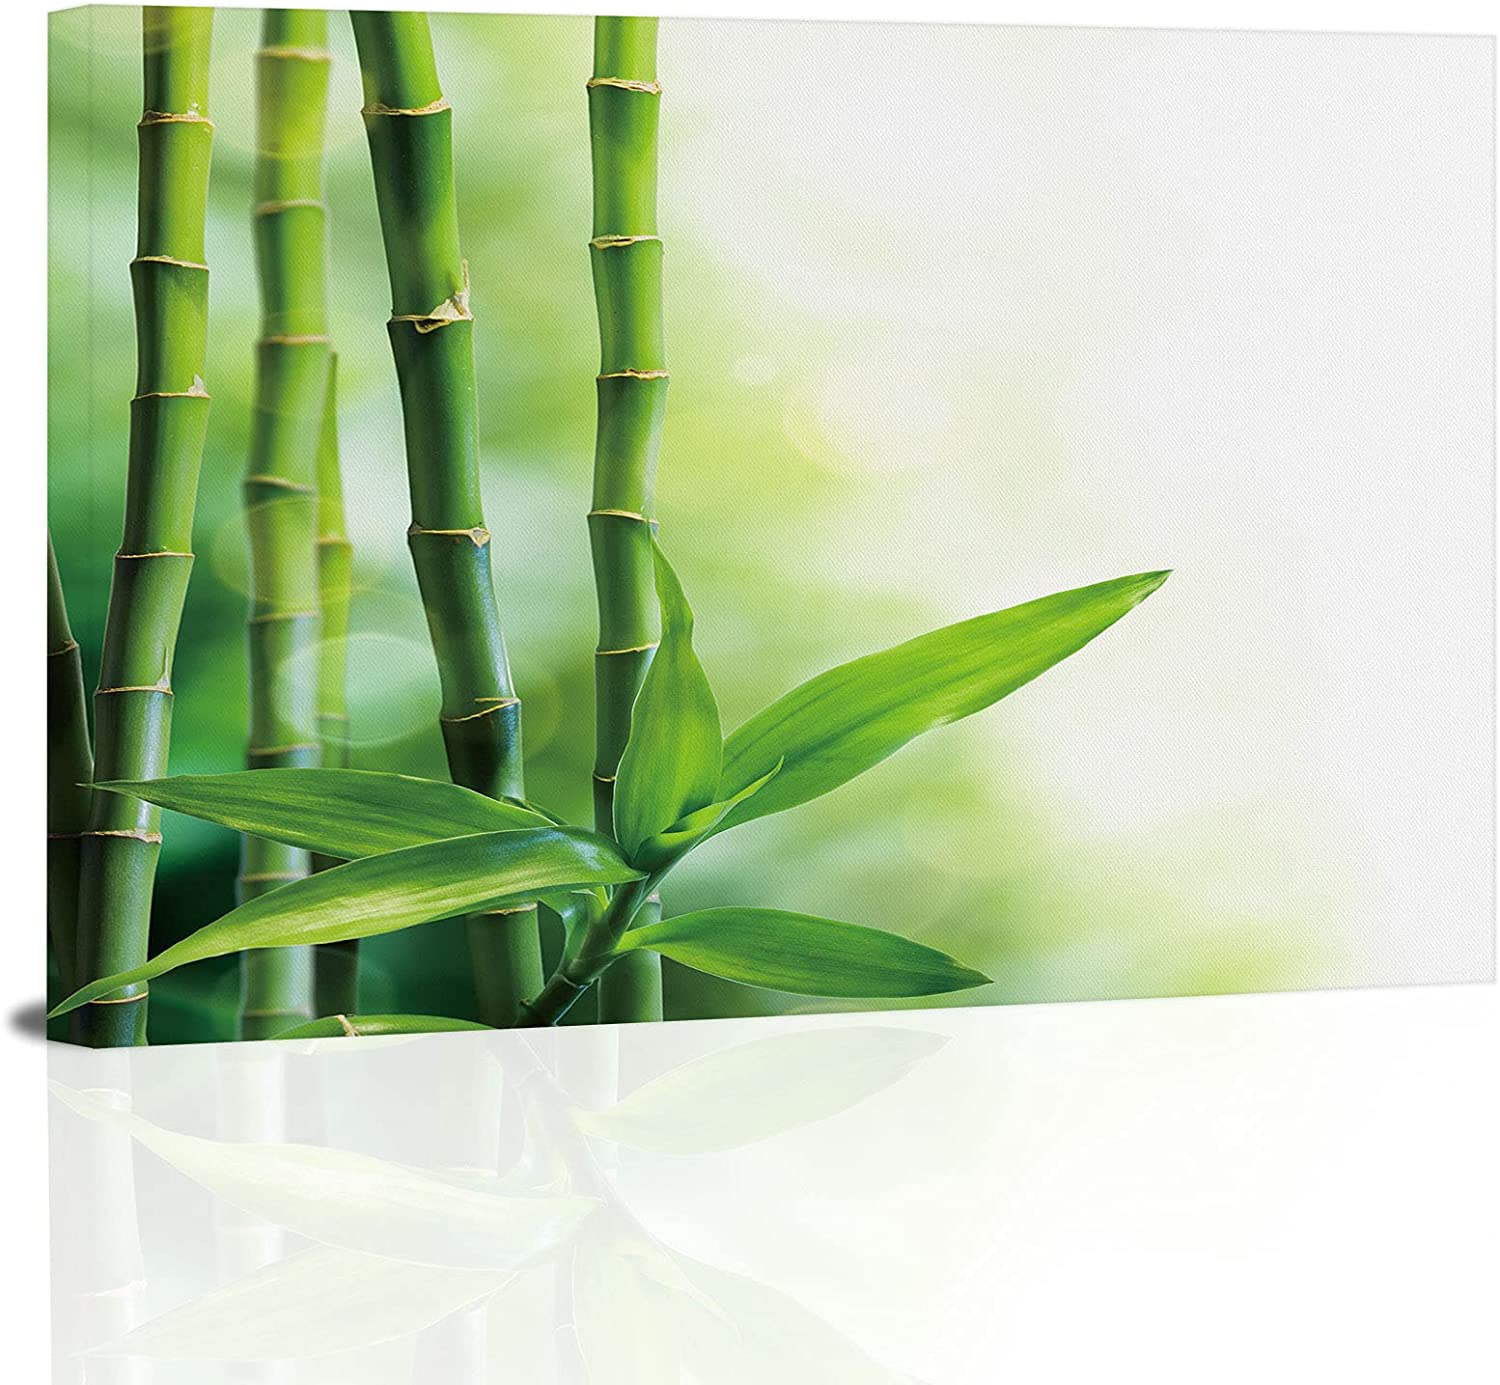 many bamboo stalks and beam Prints Decorations on Canvas Direct store Liv Sale Special Price for